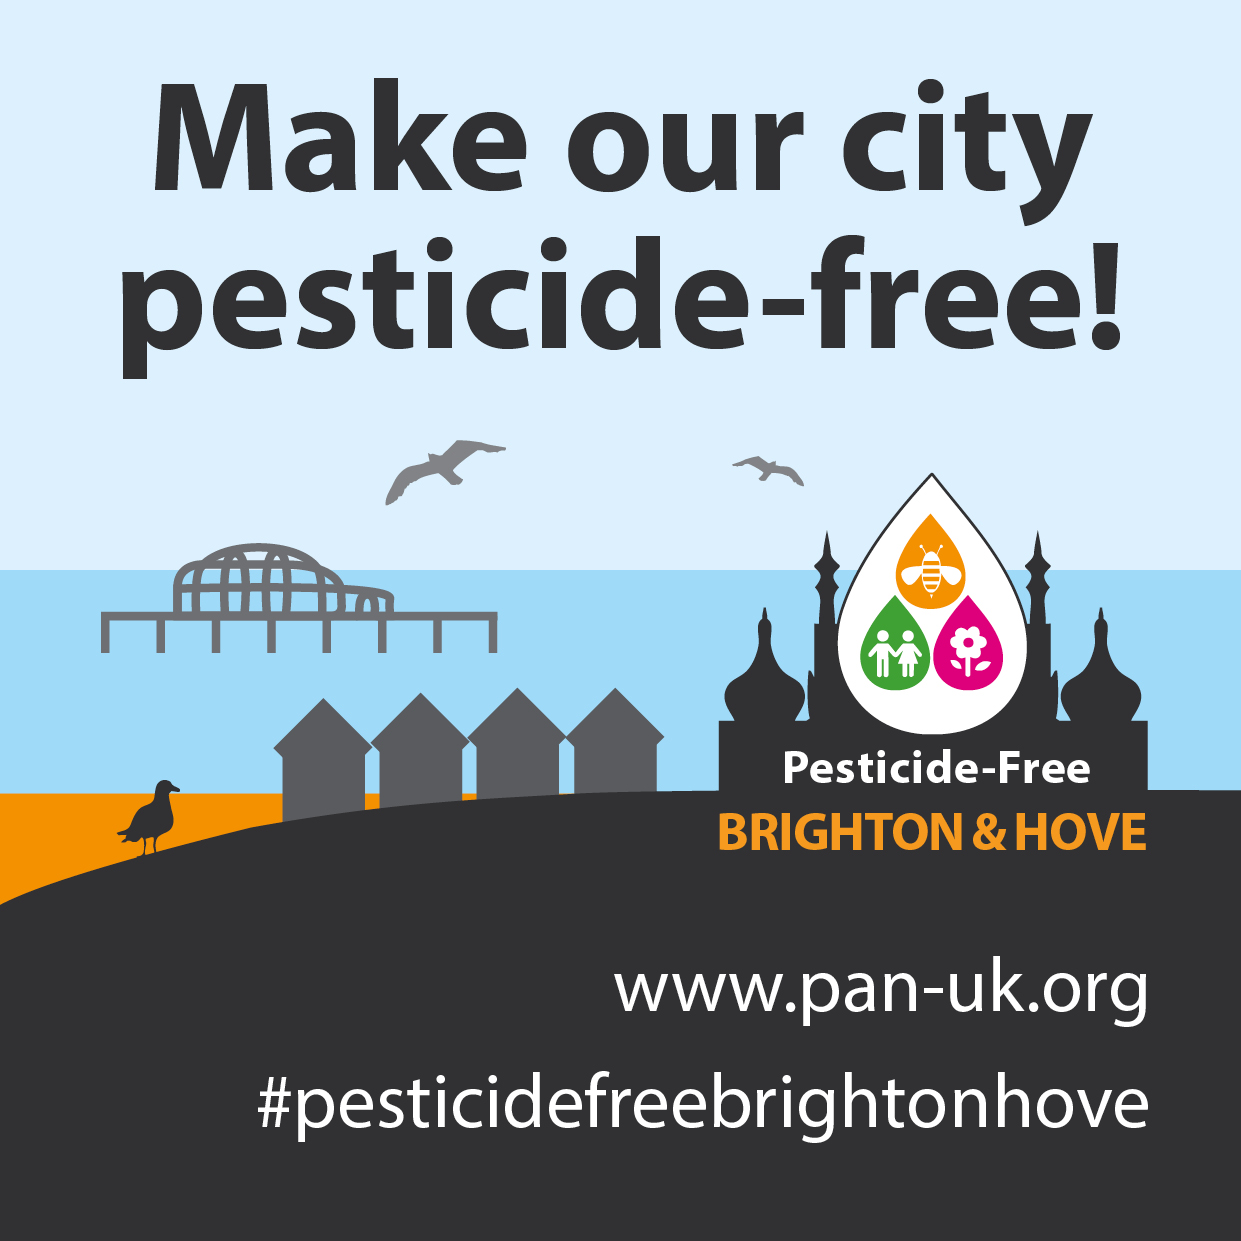 Sustain - Make Brighton & Hove Pesticide-Free